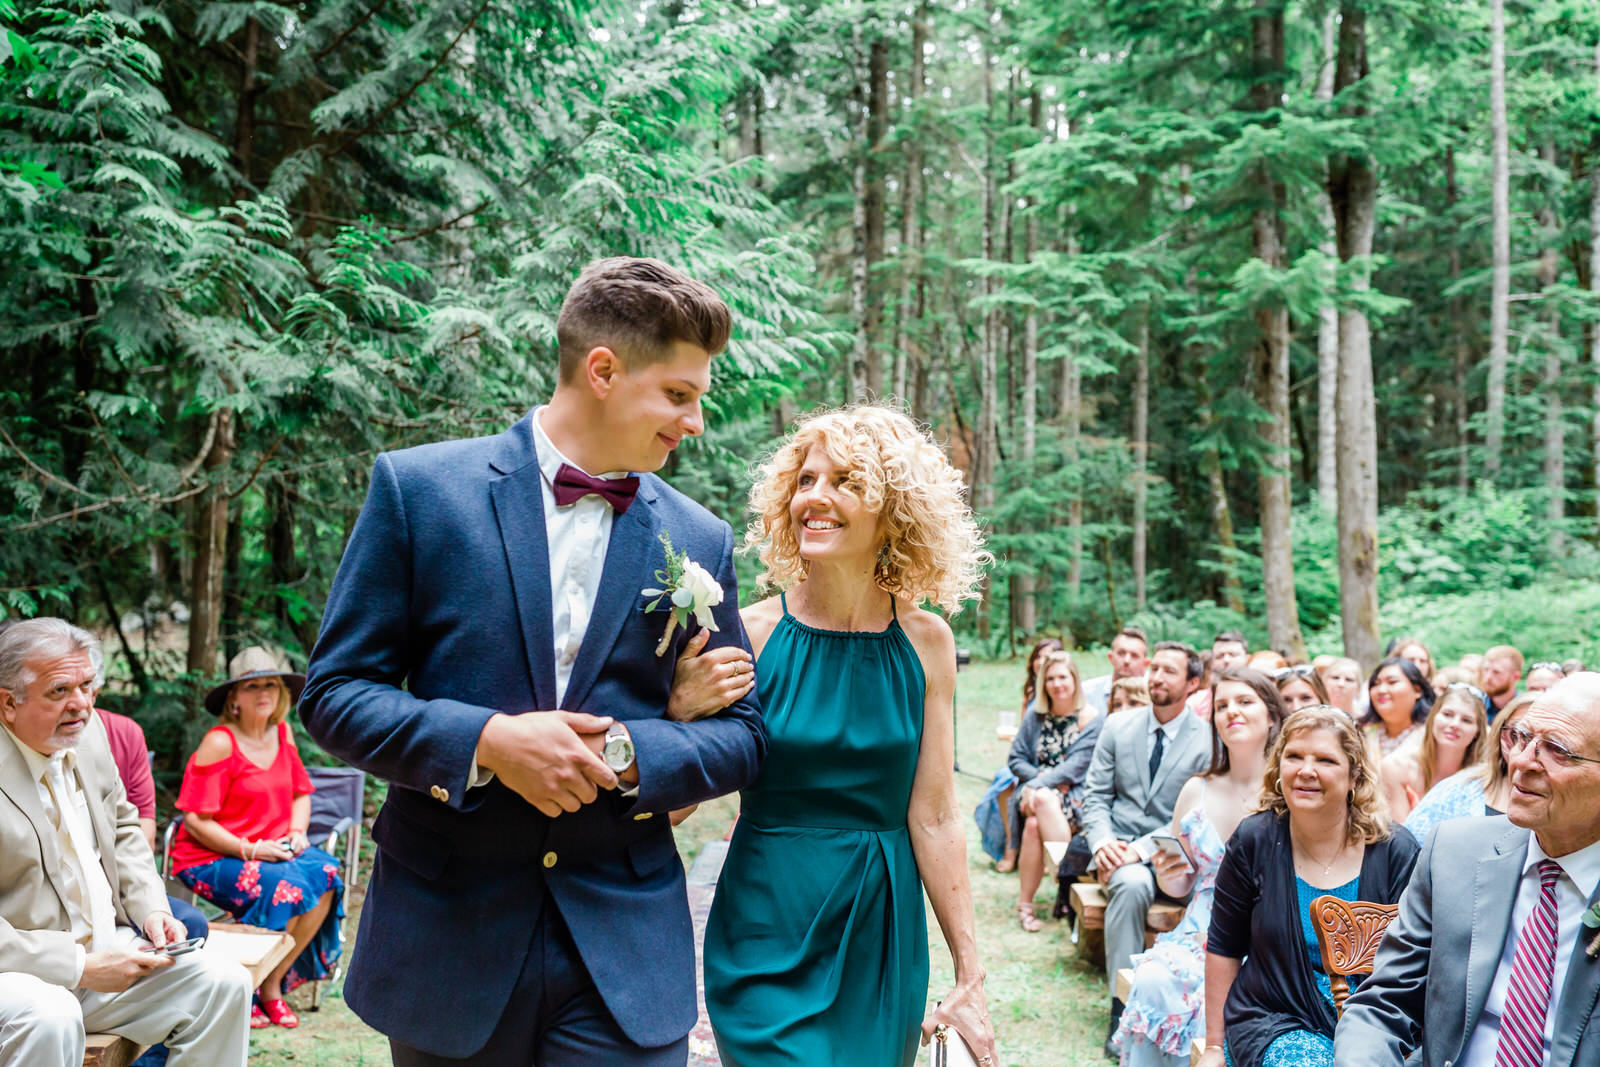 son walks with mom down the aisle